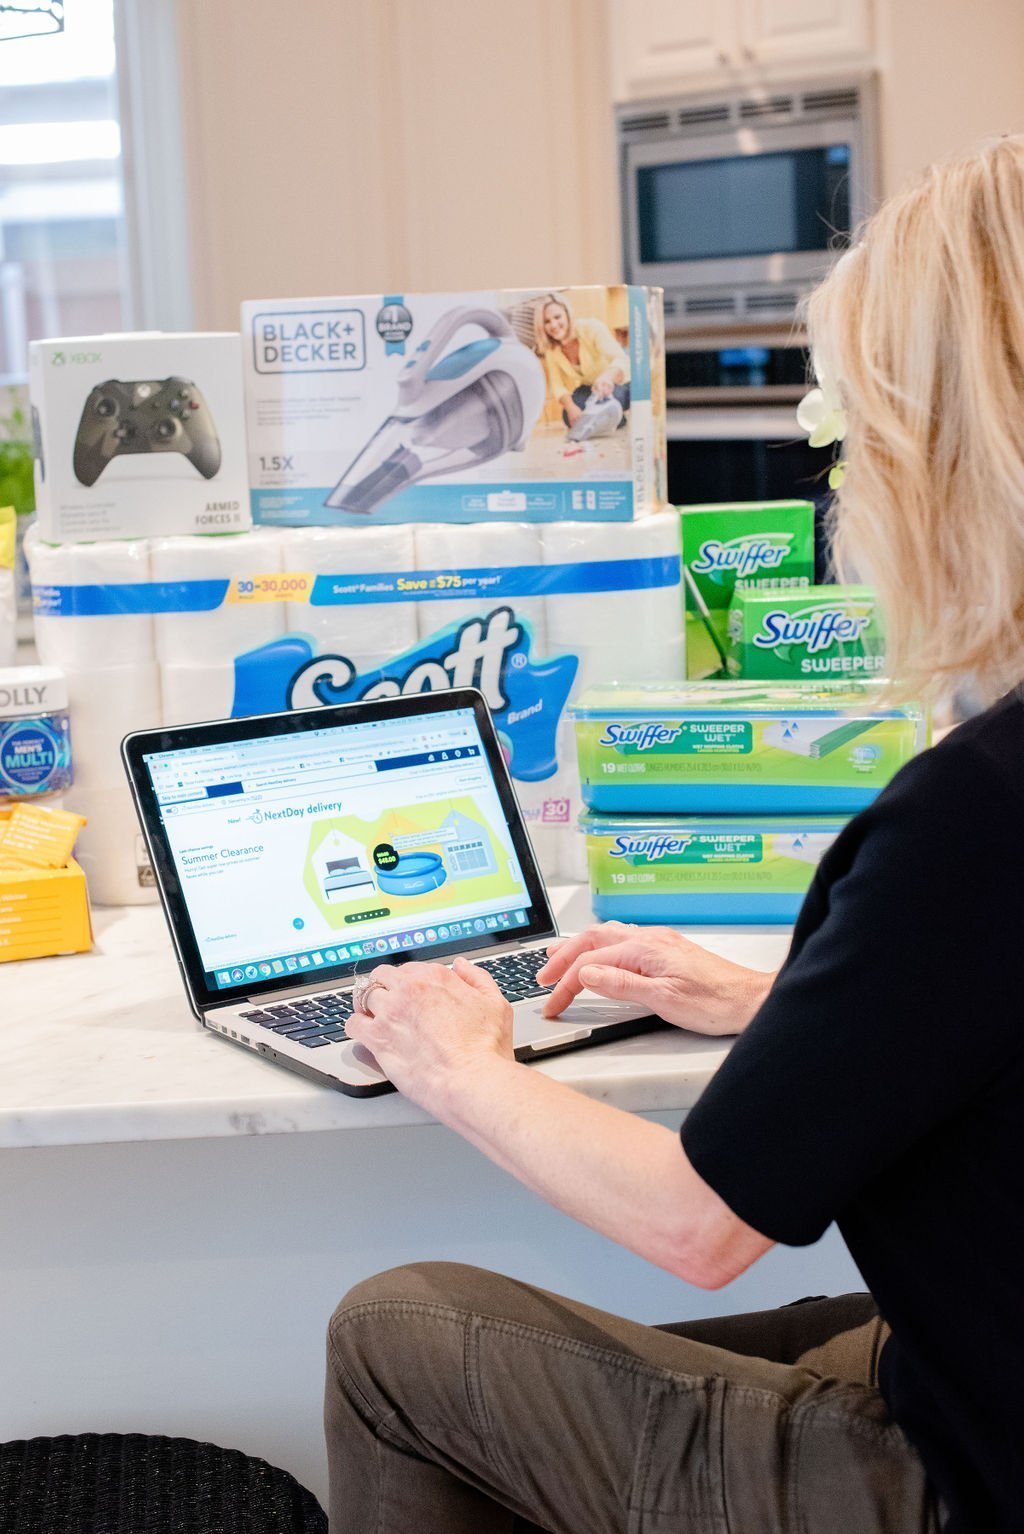 Walmart Next Day Delivery reviews by top US life and style blogger, Tanya Foster.